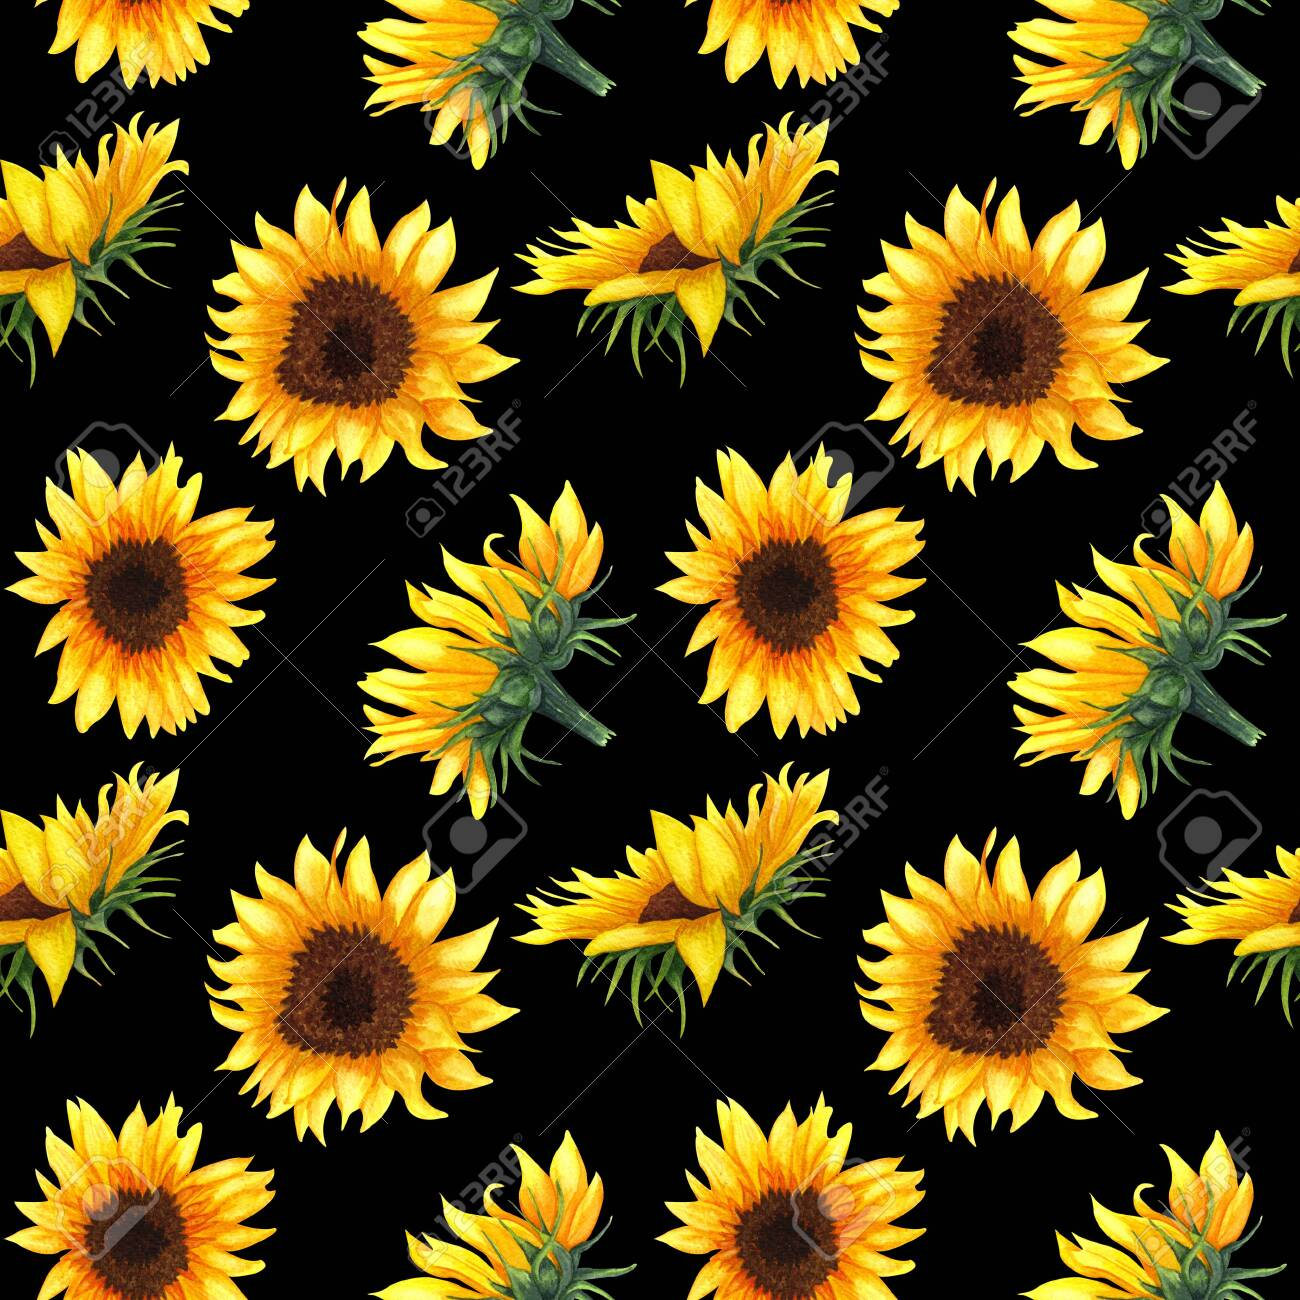 123380946 seamless pattern with sunflowers on black background collection decorative floral design elements fl